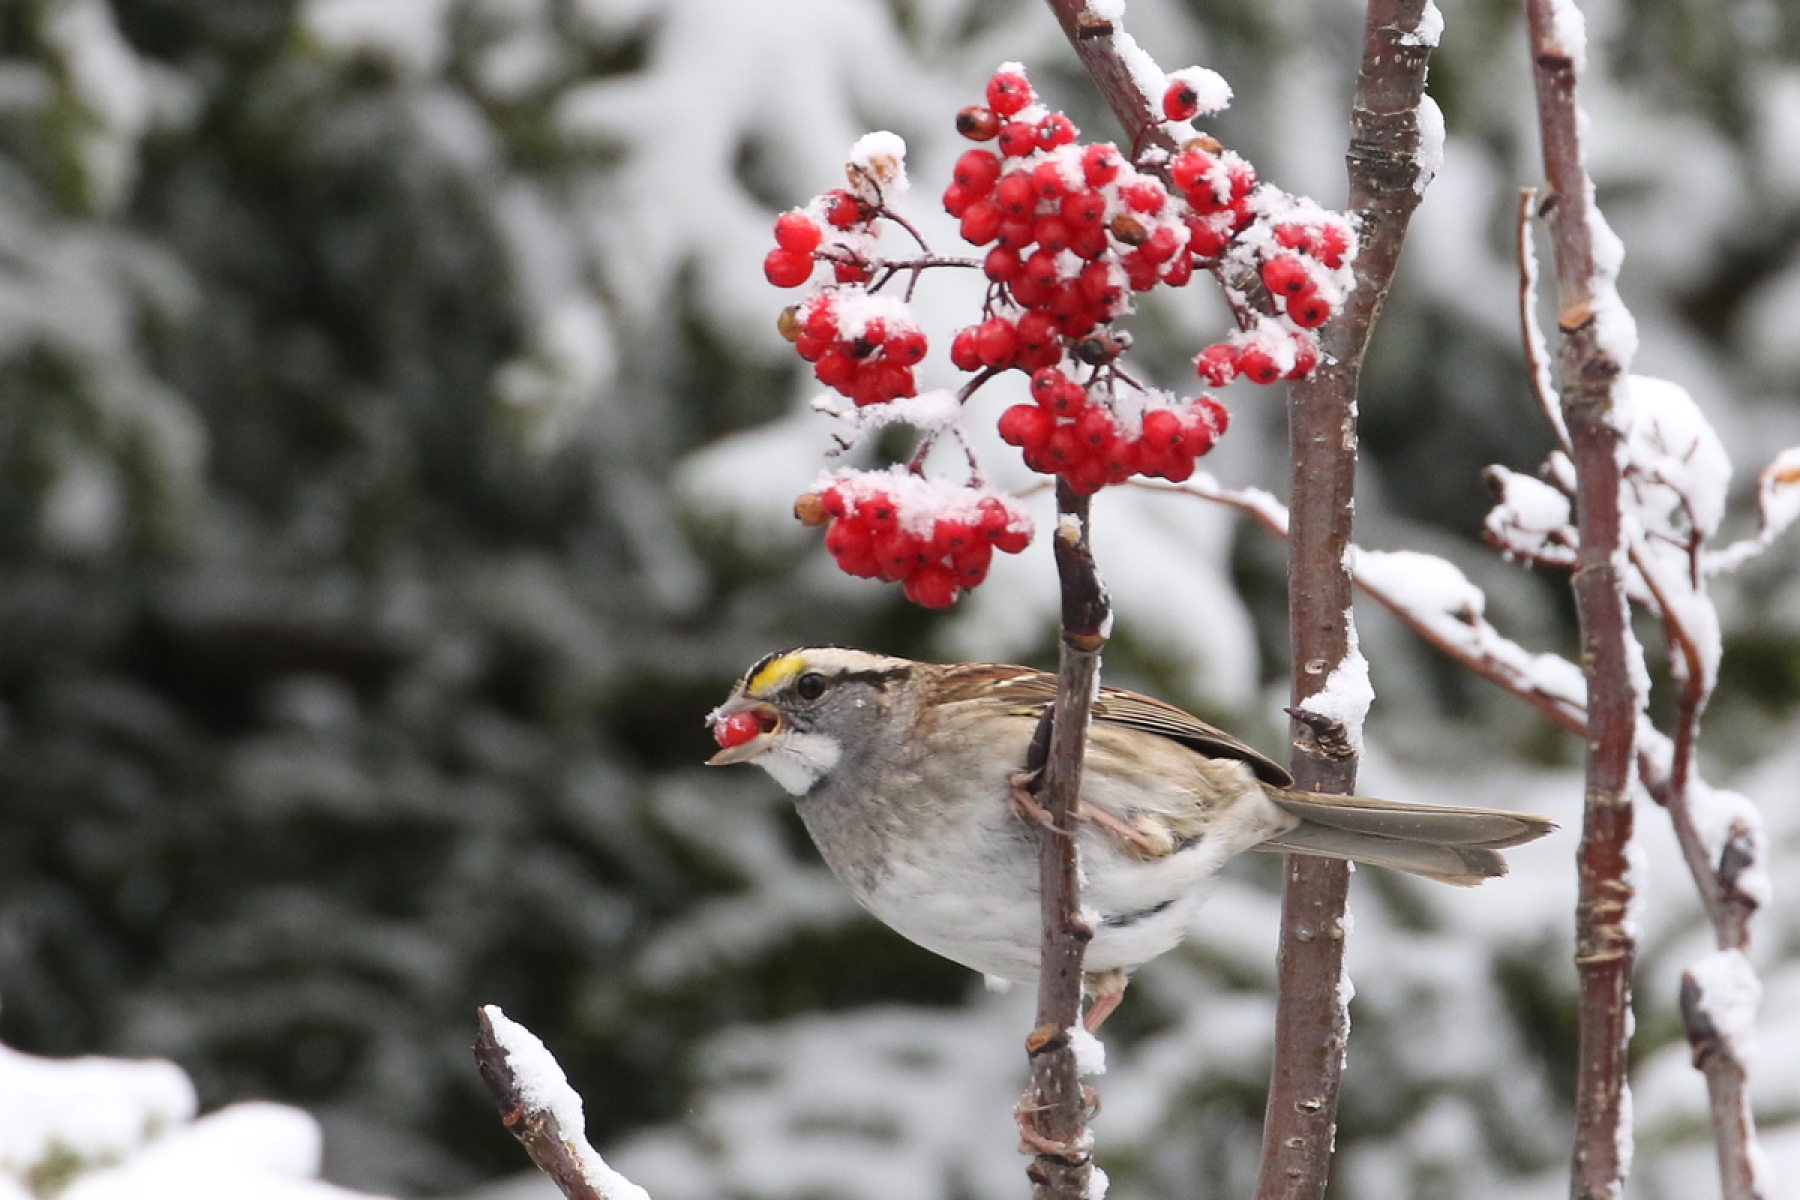 White-throated sparrow eating mountain ash berries.